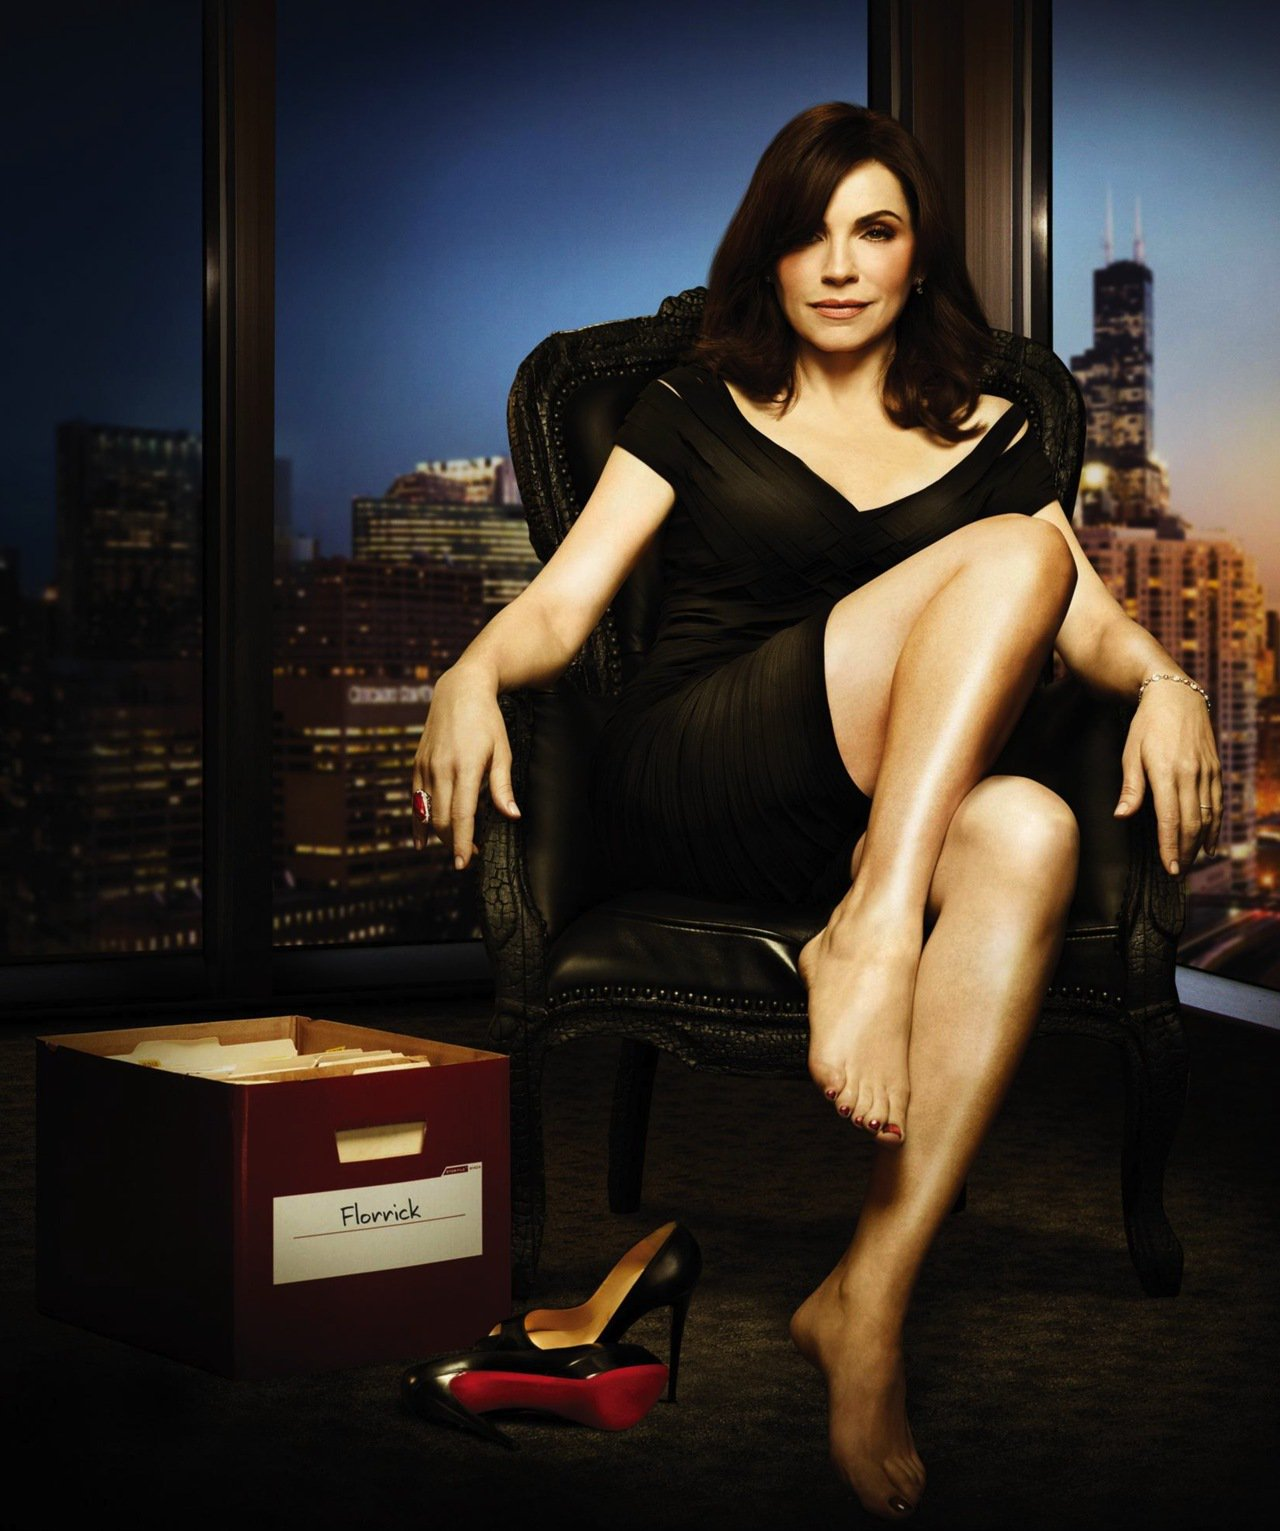 Happy Birthday to Julianna Margulies, who turns 51 today!